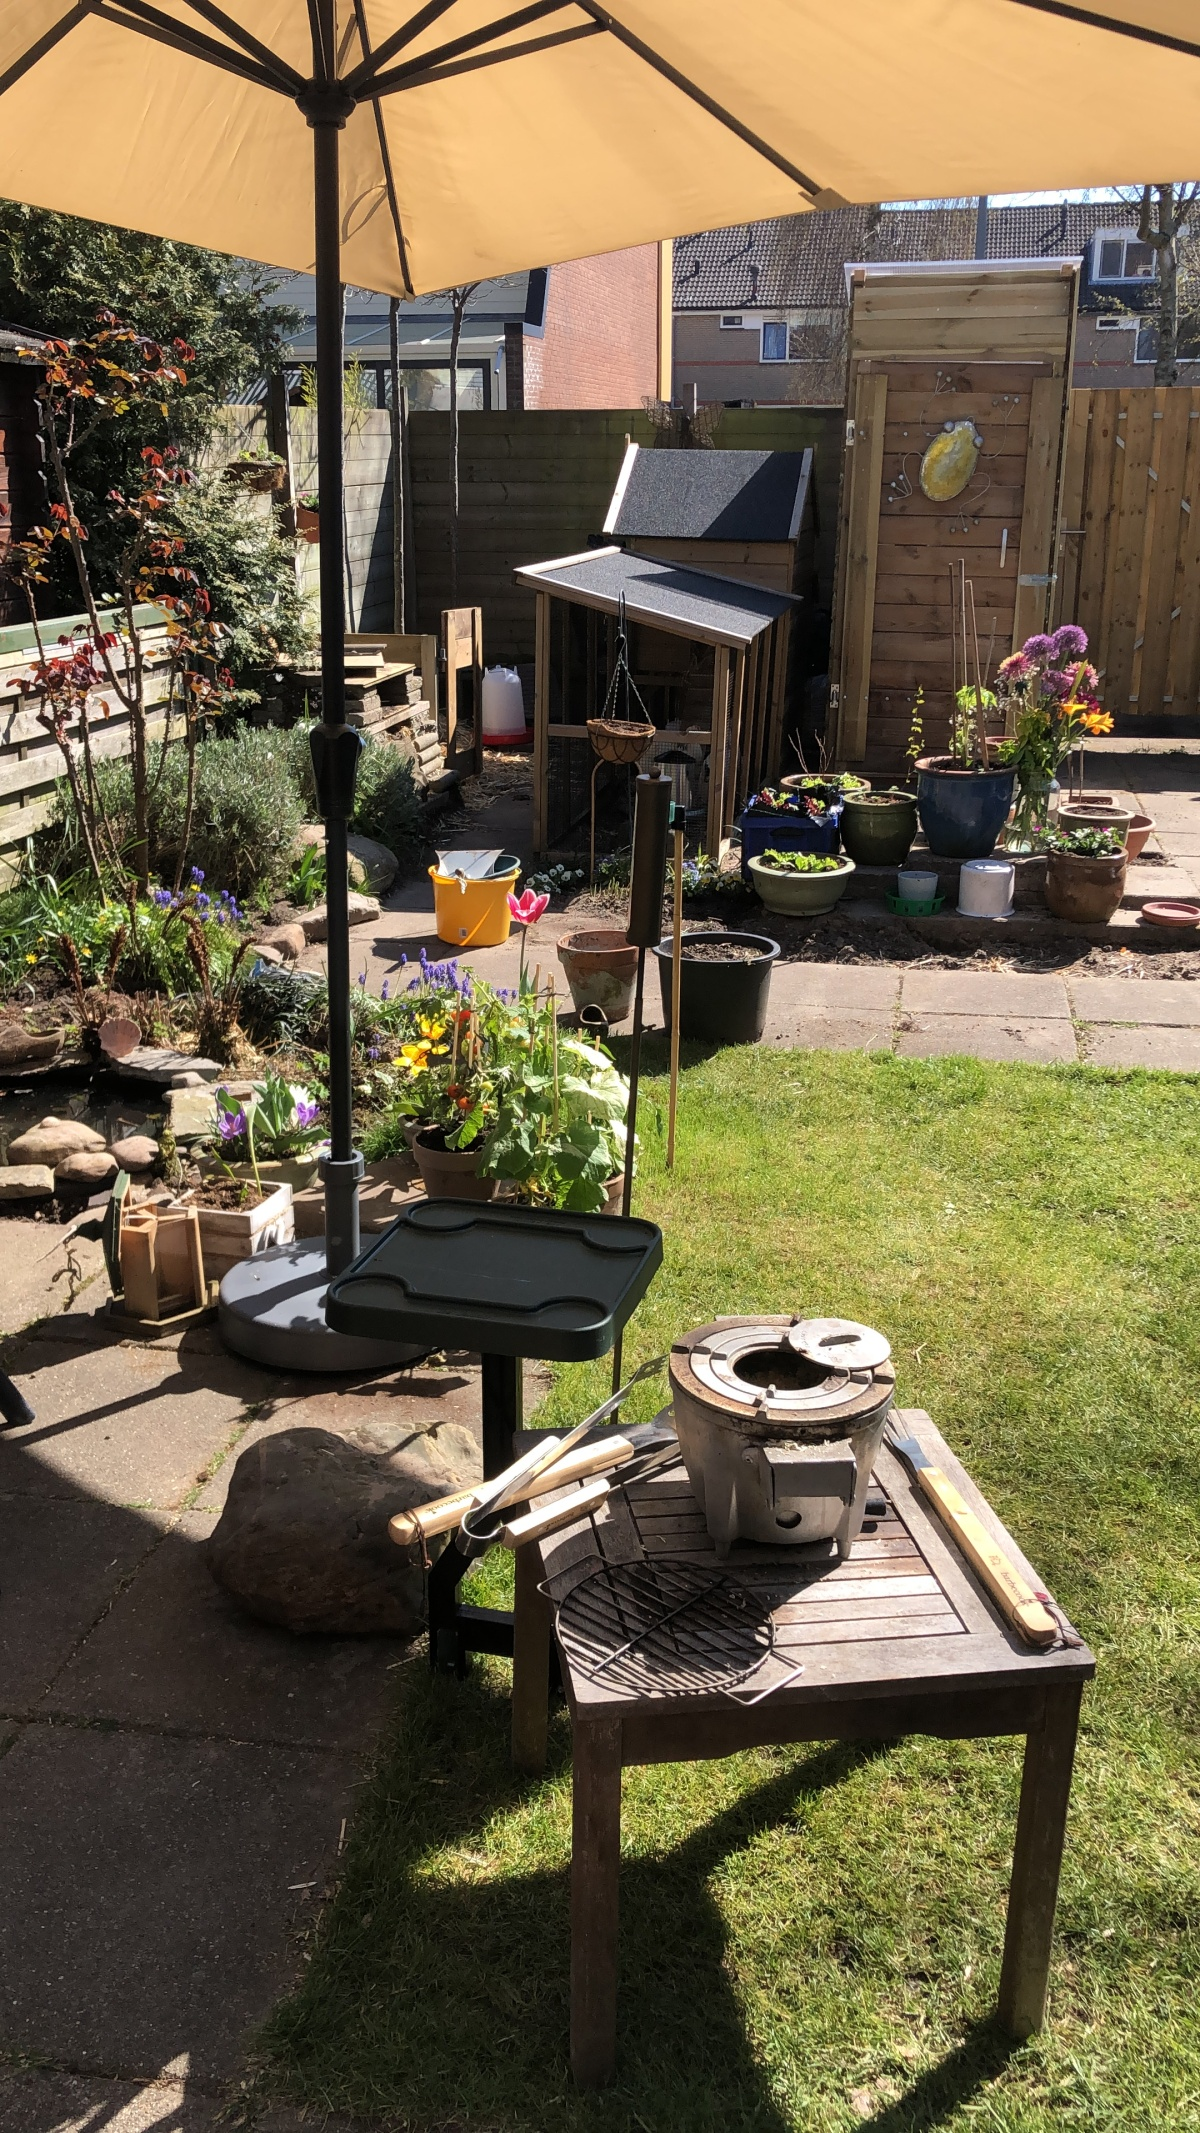 Our back garden this week, mid day.